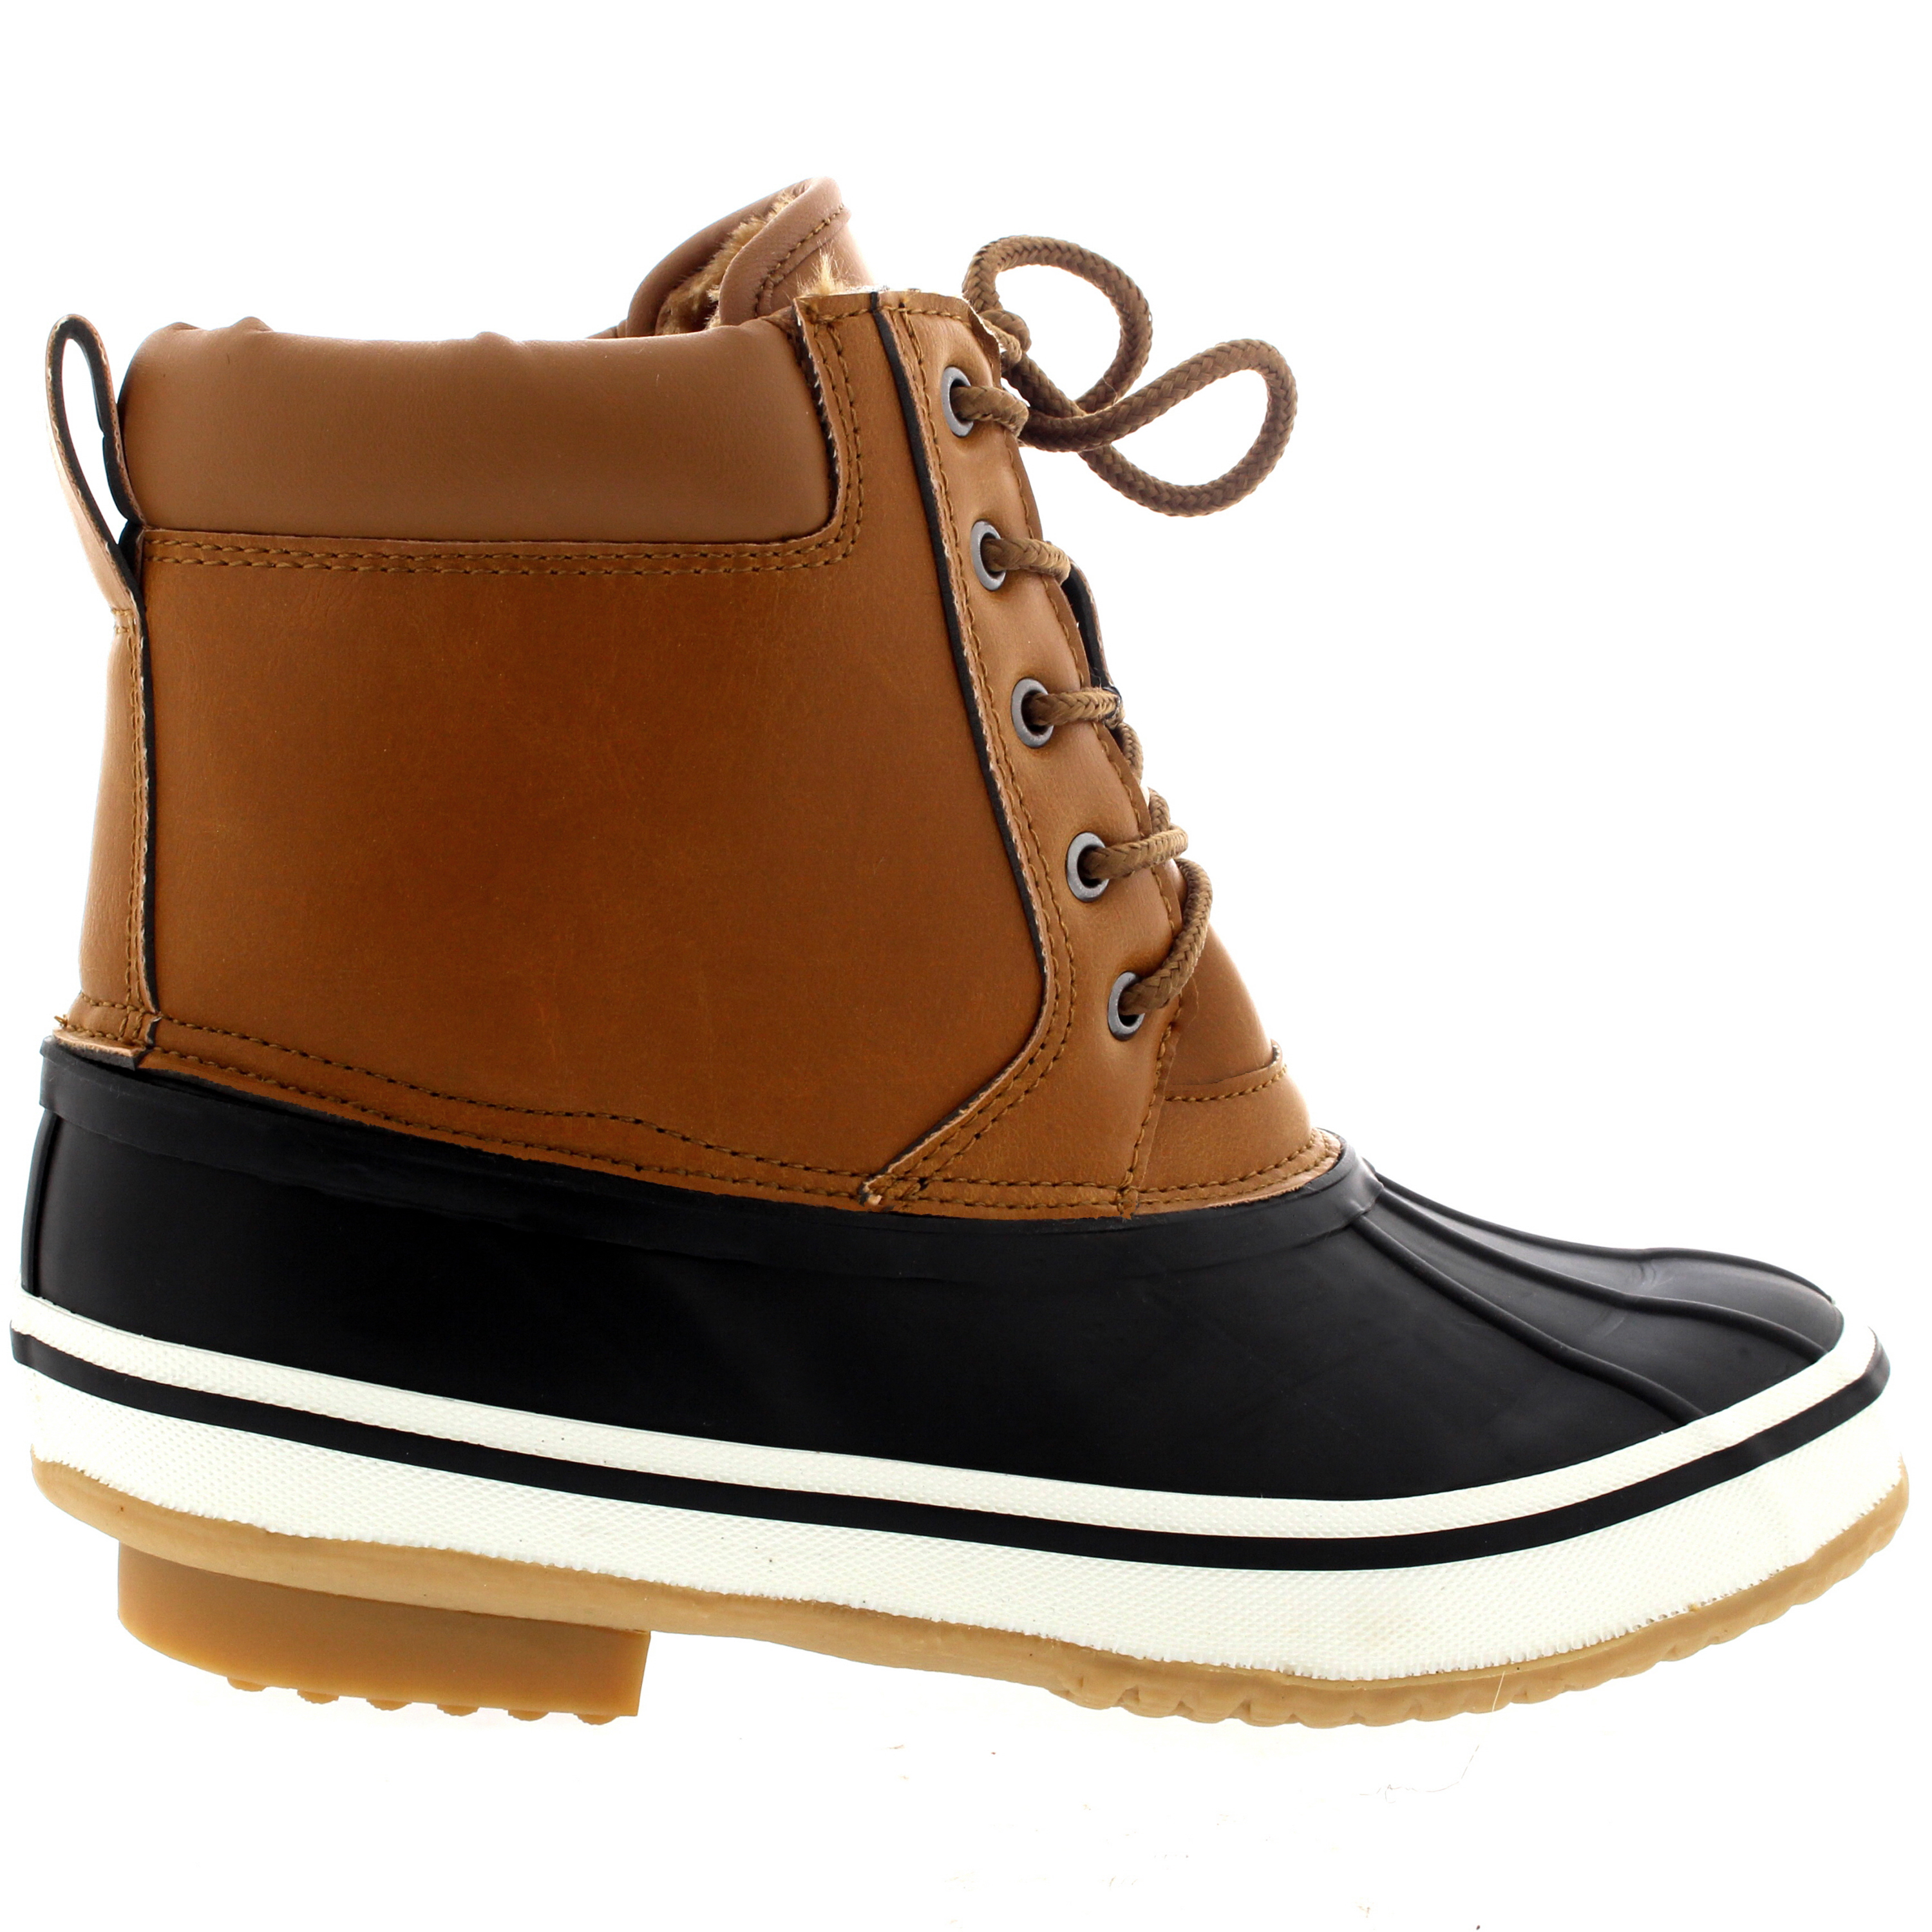 New Clothes Shoes Amp Accessories Gt Women39s Shoes Gt Boots